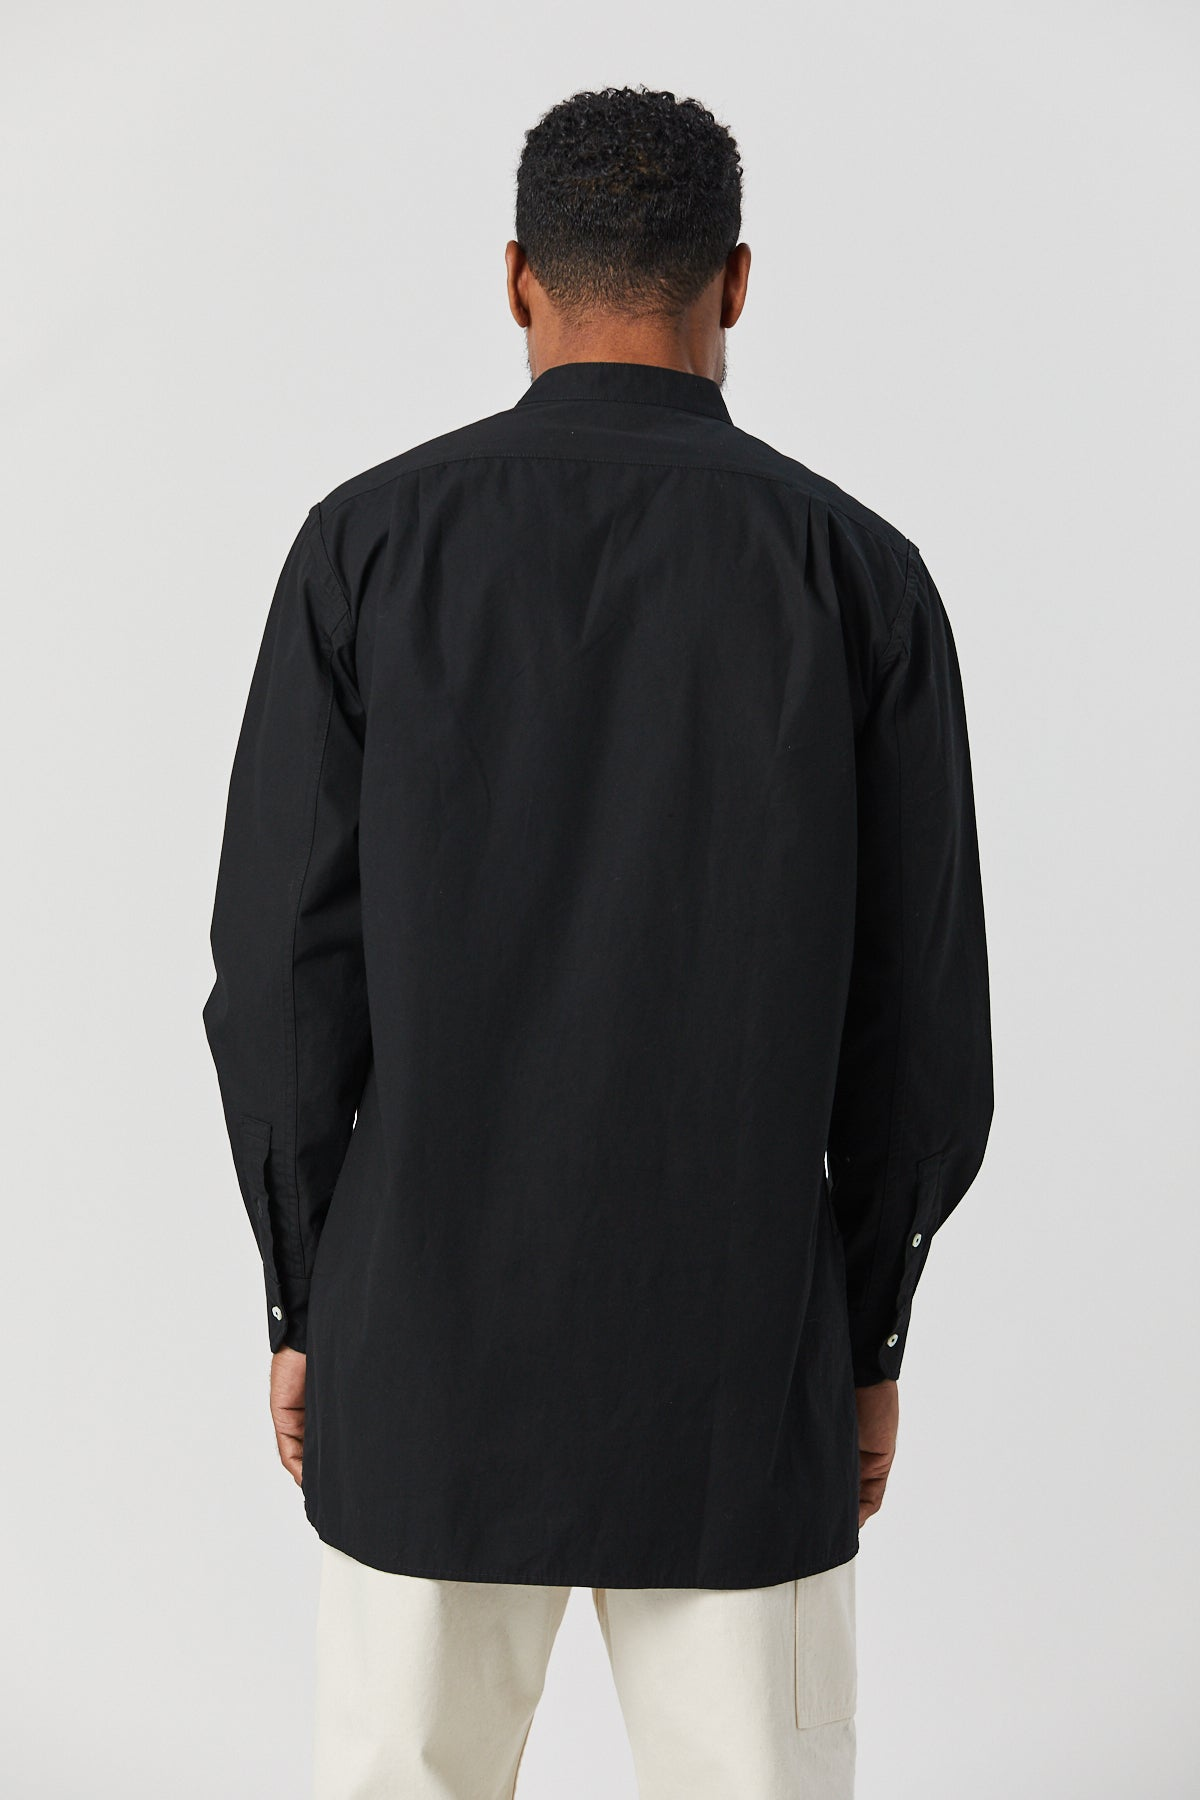 MARTIUS TUNIC IN BLACK - Fortune Goods